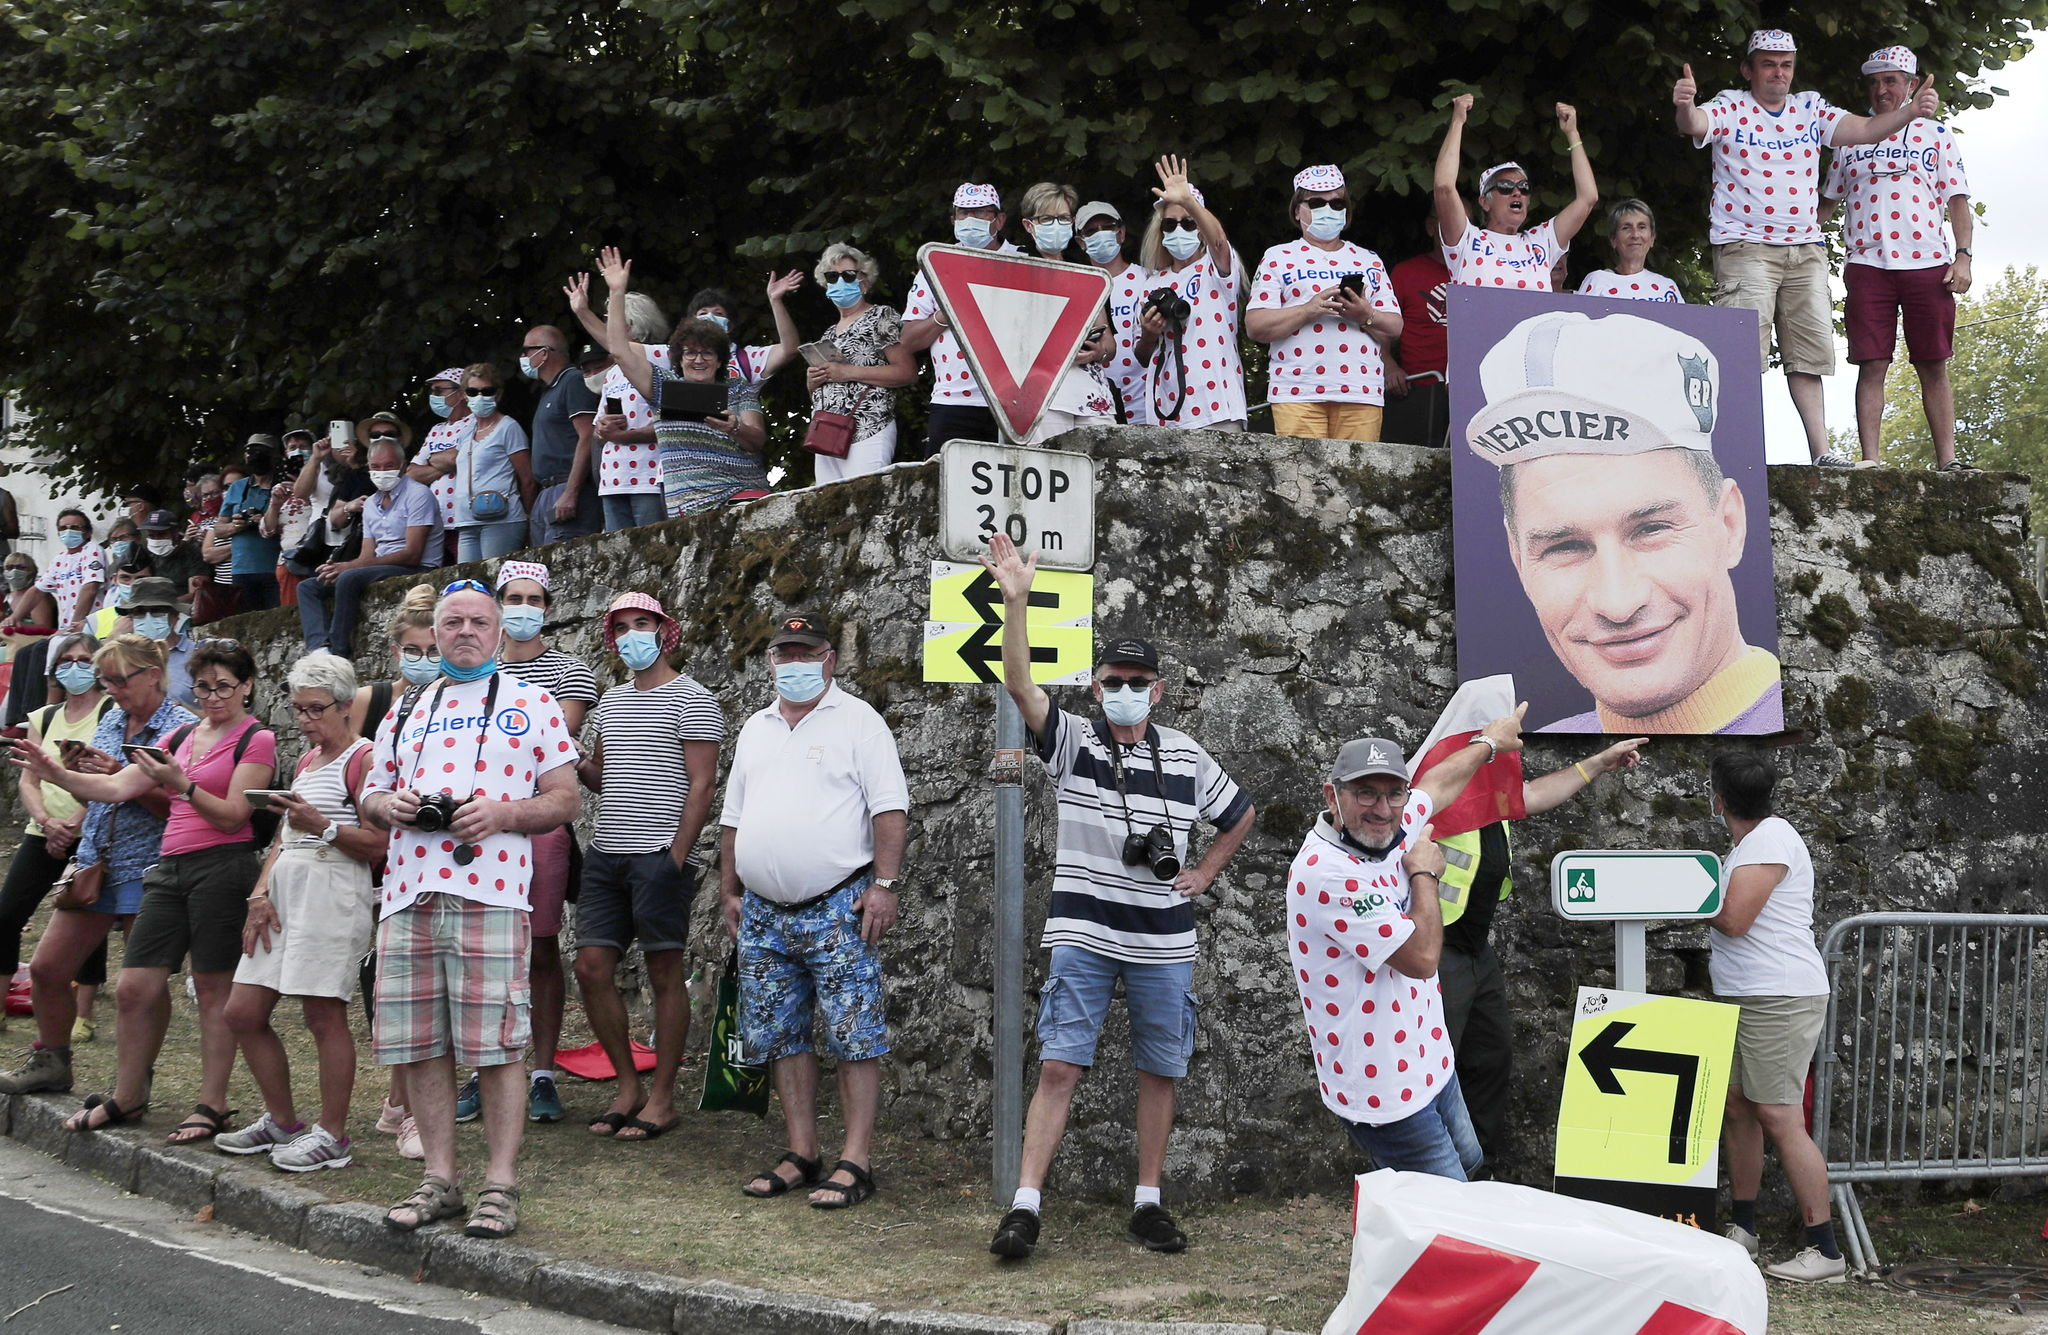 Sarran (France), 10/09/2020.- A spectator points at a poster of late French cyclist Raymond Poulidor as he waits for the peloton during the 12th stage of the lt;HIT gt;Tour lt;/HIT gt; de France cycling race over 218km from Chauvigny to Sarran, France, 10 September 2020. (Ciclismo, Francia) EFE/EPA/CHRISTOPHE PETIT TESSON